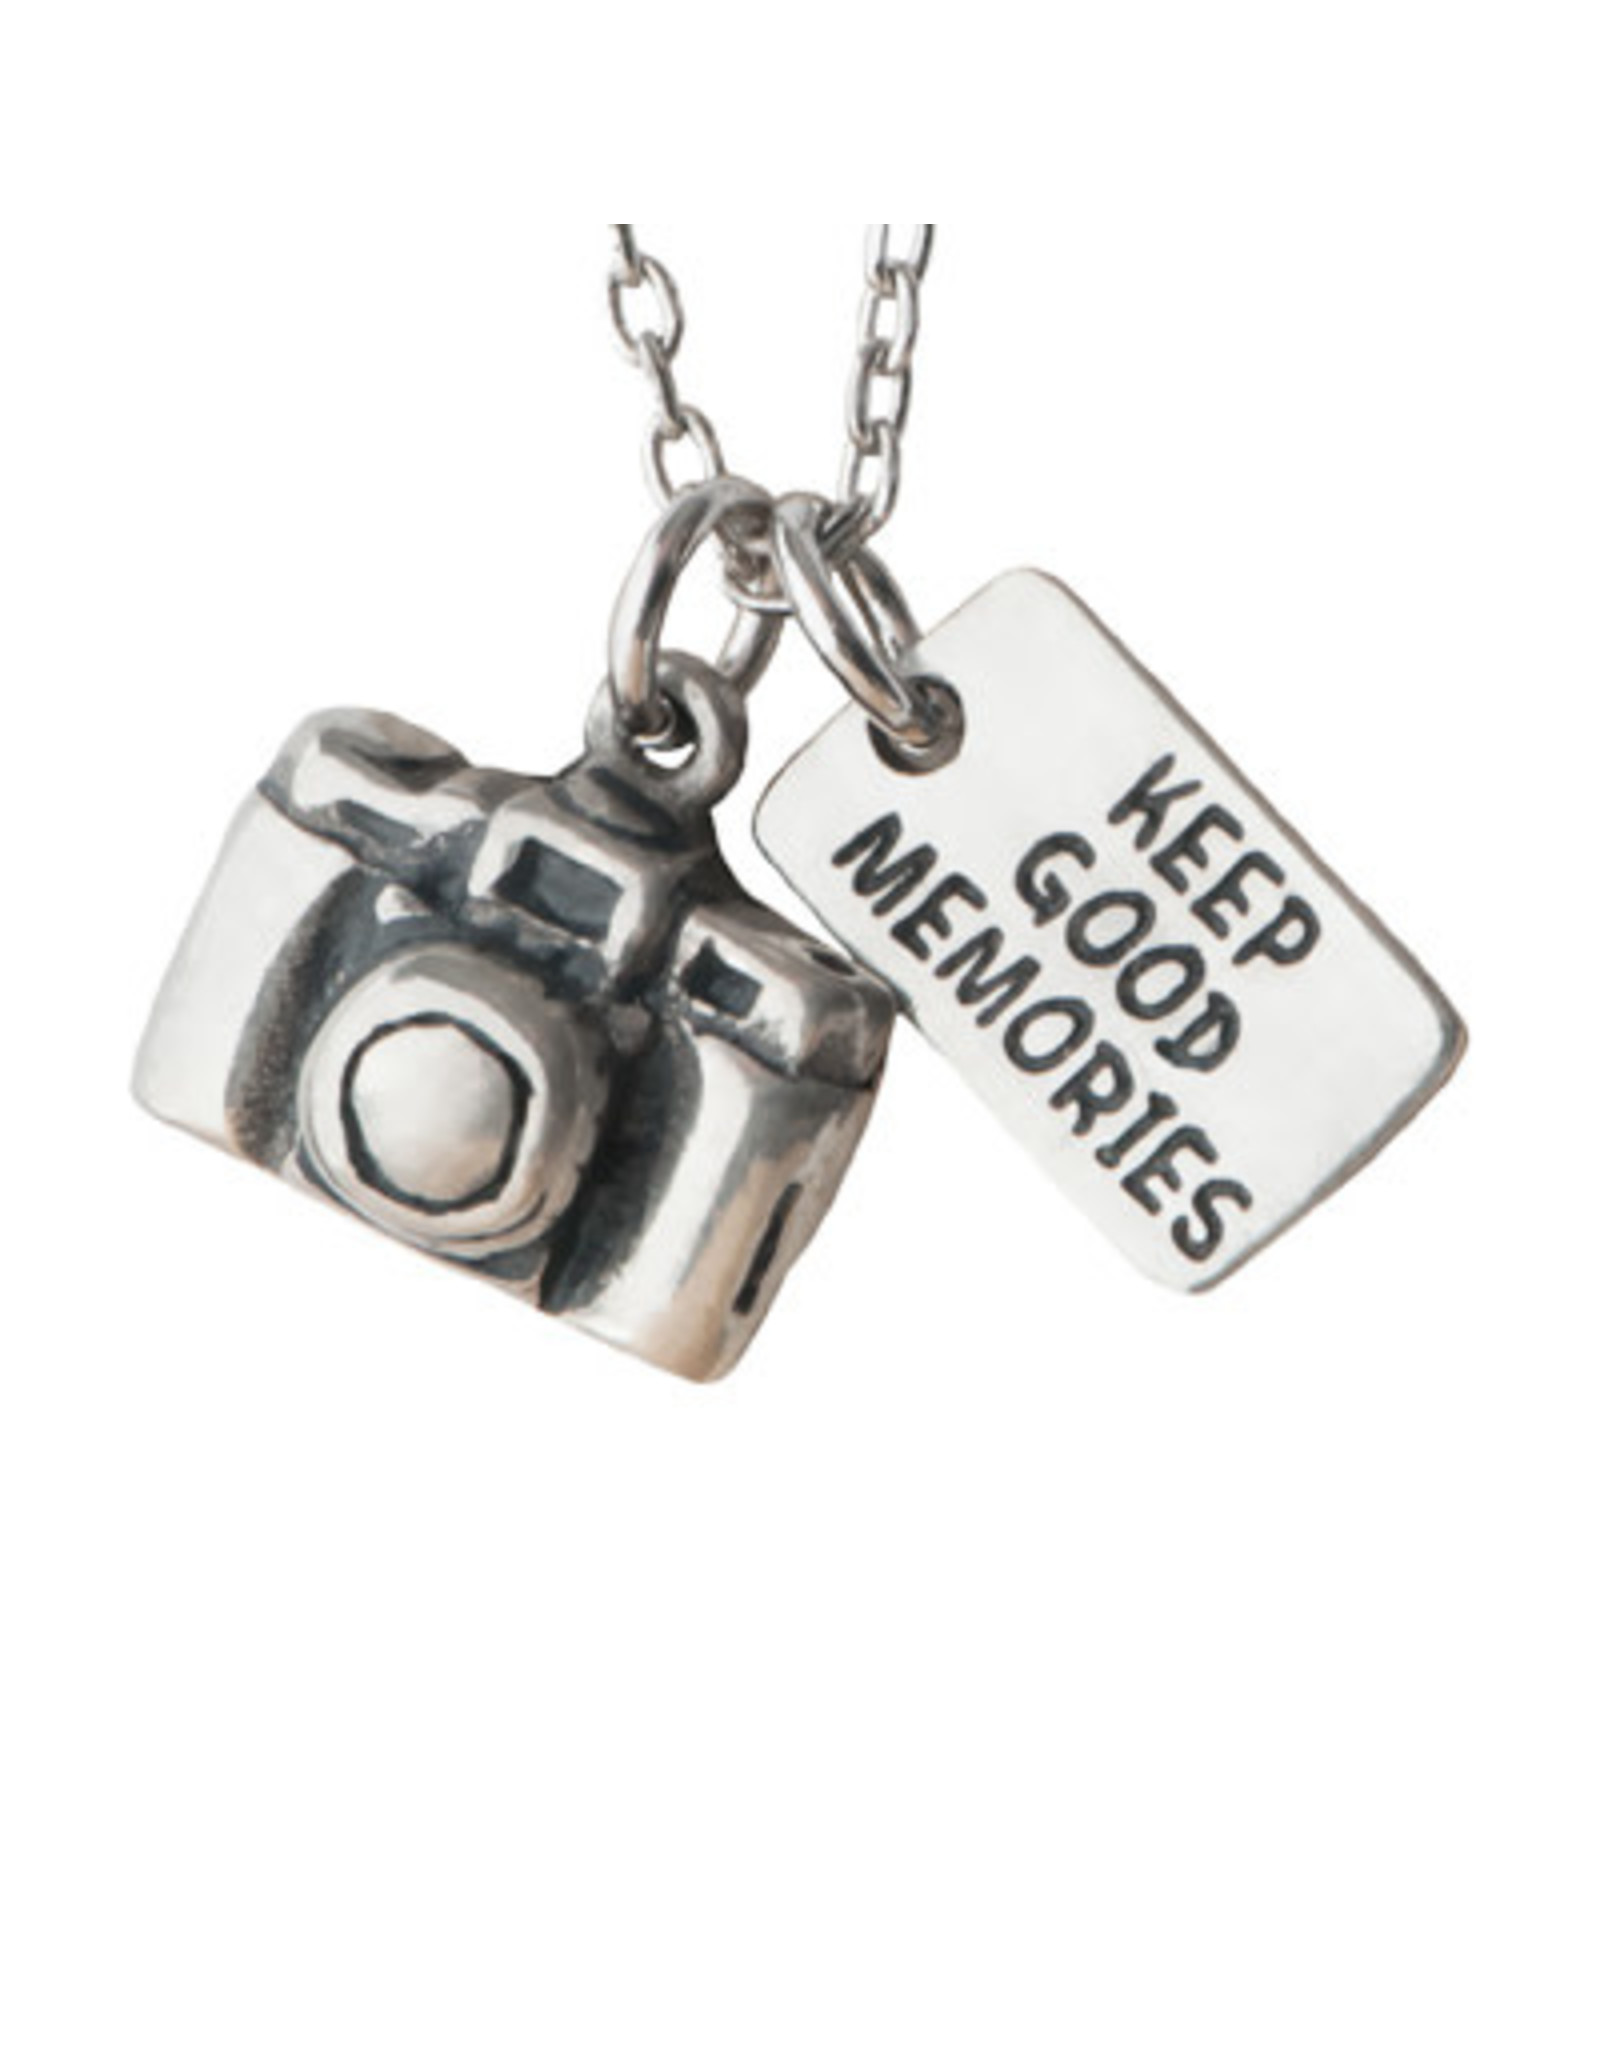 Pendant Necklace Greatful for the Journey, Treasure the Moment, Thailand